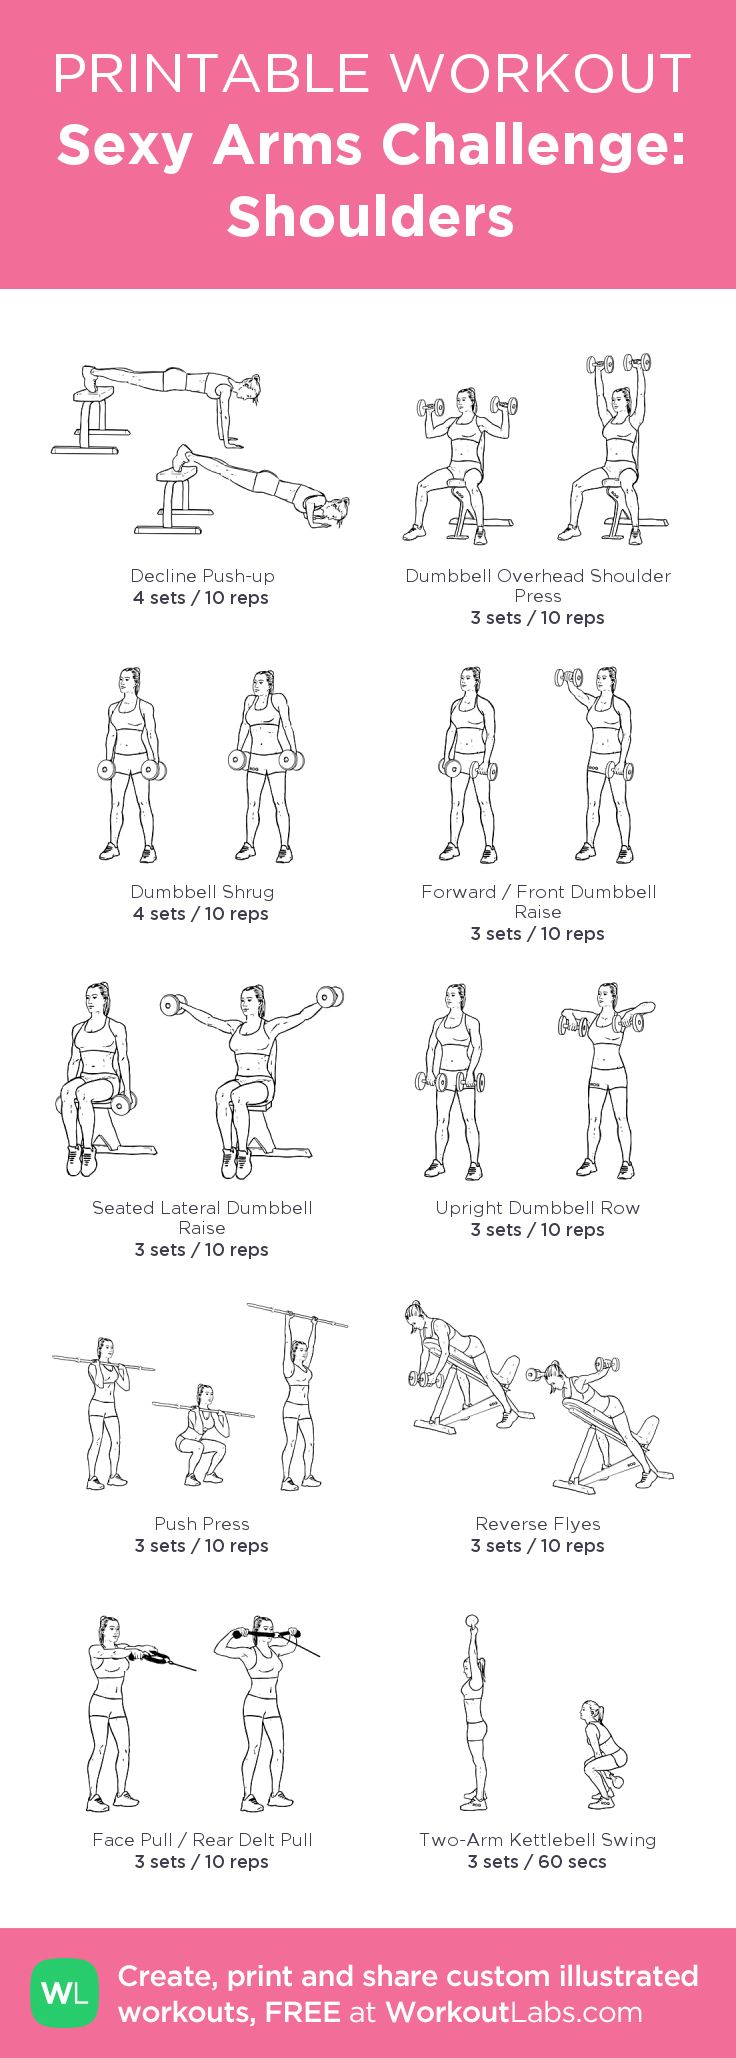 Sexy Arms Challenge: Shoulders:my visual workout created at WorkoutLabs.com • Click through to customize and download as a FREE PDF! #customworkout